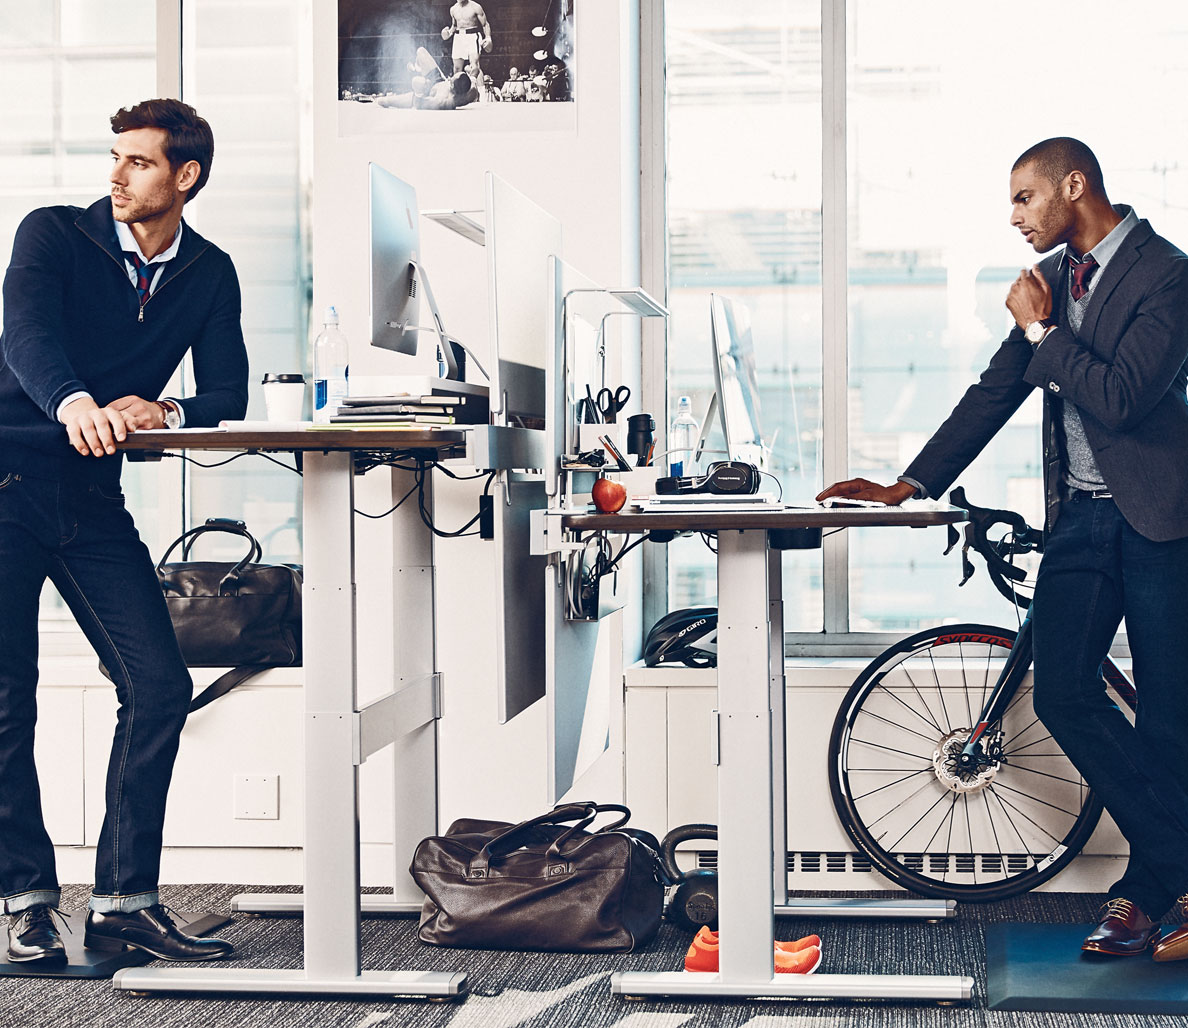 Get Fit @ Work: How the Standing Desk Can Improve Your Health